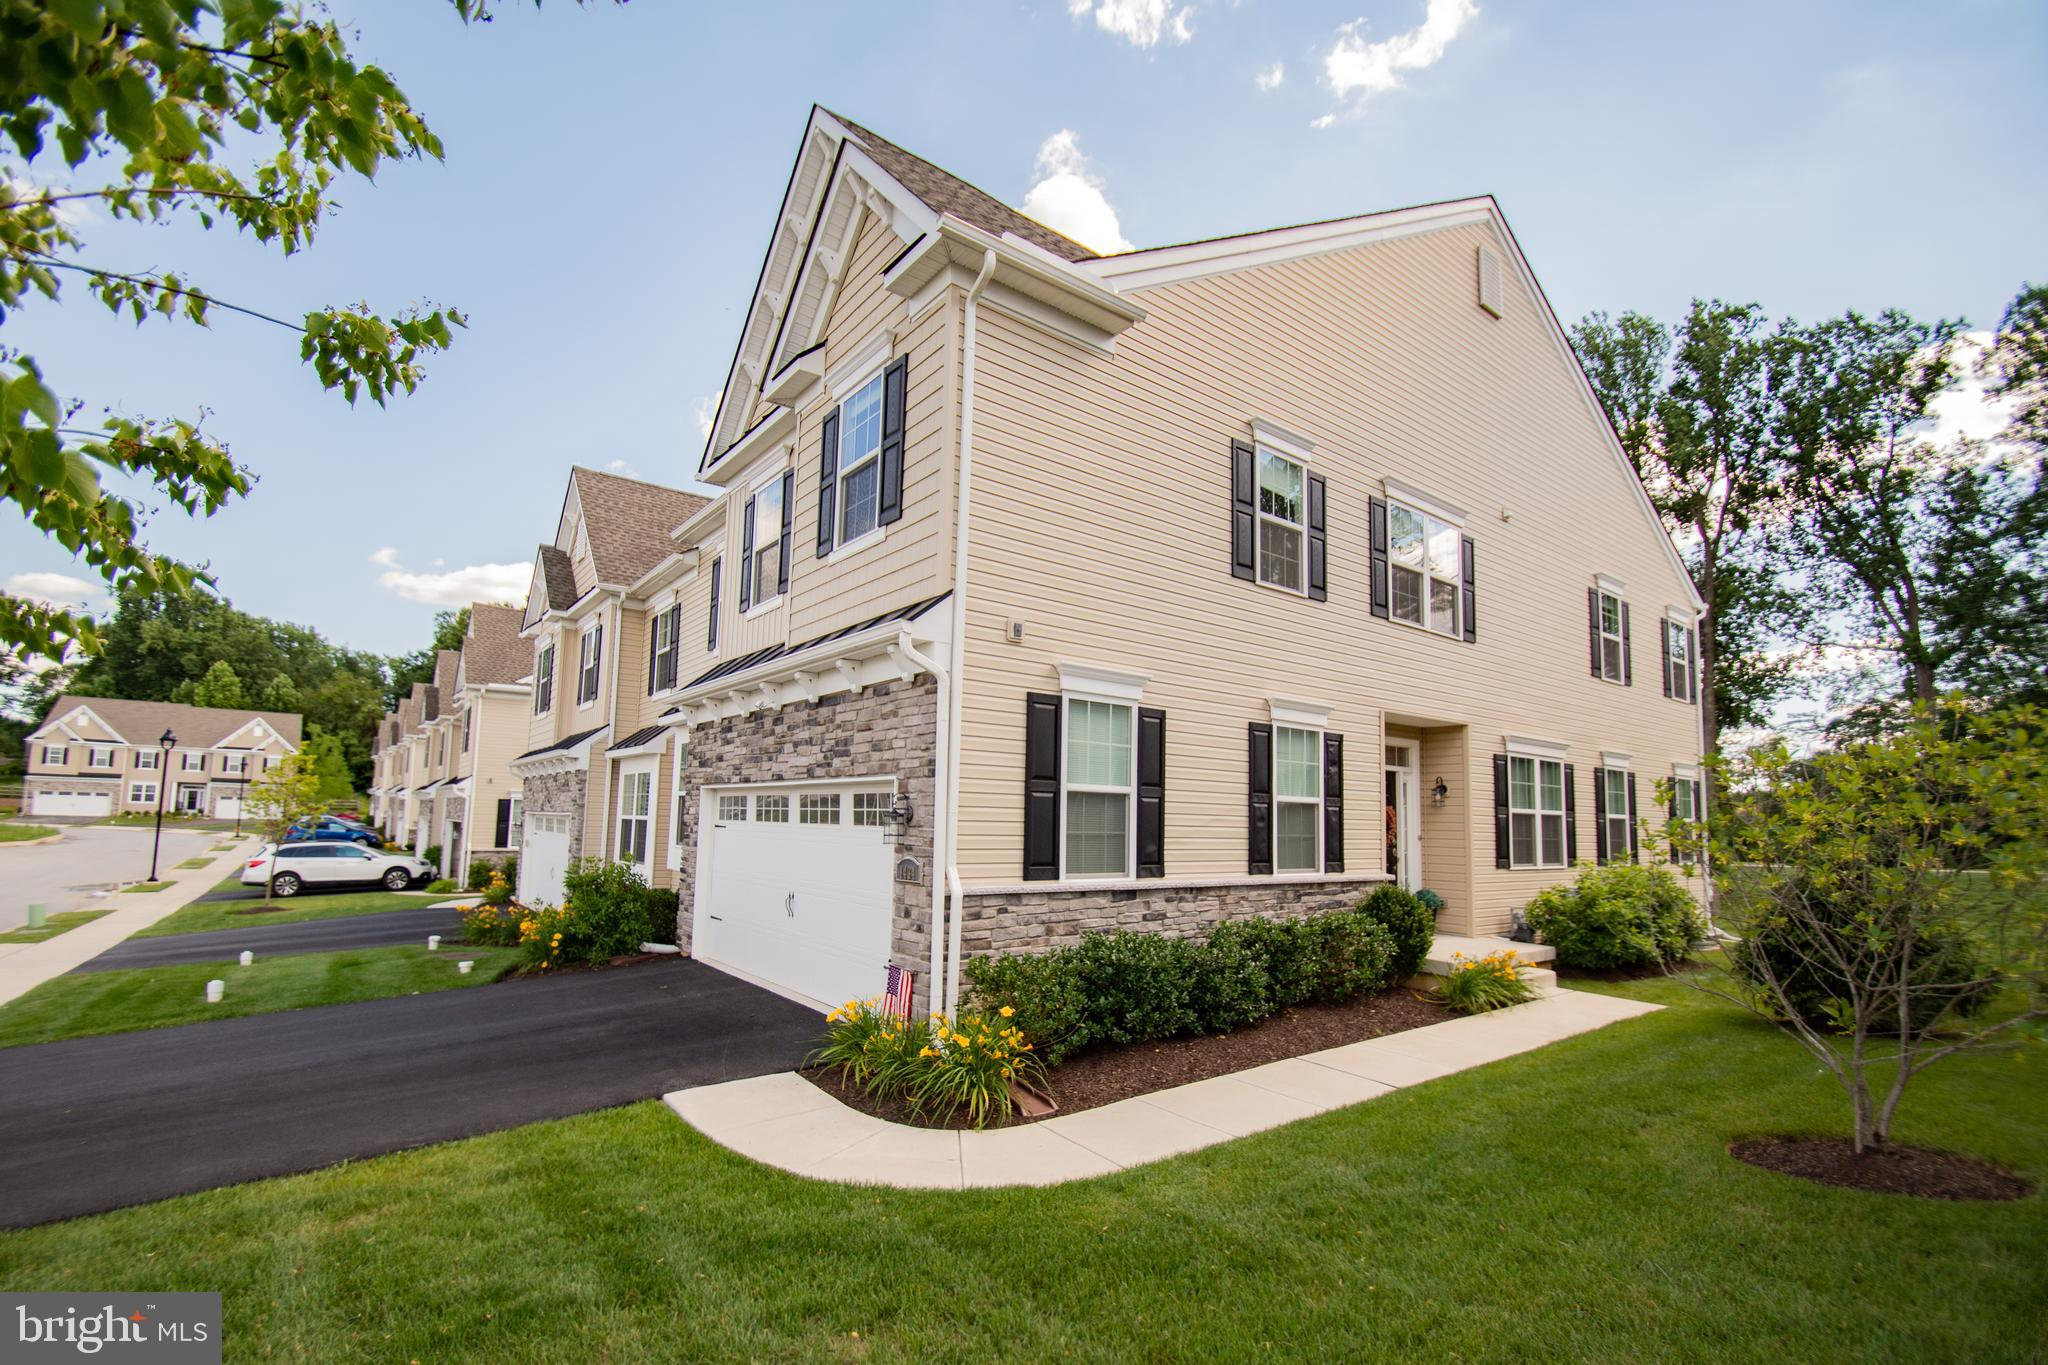 Custom Bradford Model with over $70K in Upgrades! One of the largest units in the Reserve at Glen Loch. This absolutely stunning open floor plan exudes all the warmth and comfort as you enter the front door.  The gourmet kitchen with all the amenities awaits your finest meal. The Family Room is spacious and offers a custom marble fire place. The pictures speak for themselves! The first floor private office has an abundance of light. As you continue to the 2nd level you will encounter a large loft area centered perfectly. The master bedroom suite offers 2 walk in closets. Perfect! The other 2 bedrooms are generous size. The finished basement completes the pictures. Taxes have been appealed and are about $1000 less than what is in the public records. The seller is licensed PA realtor.